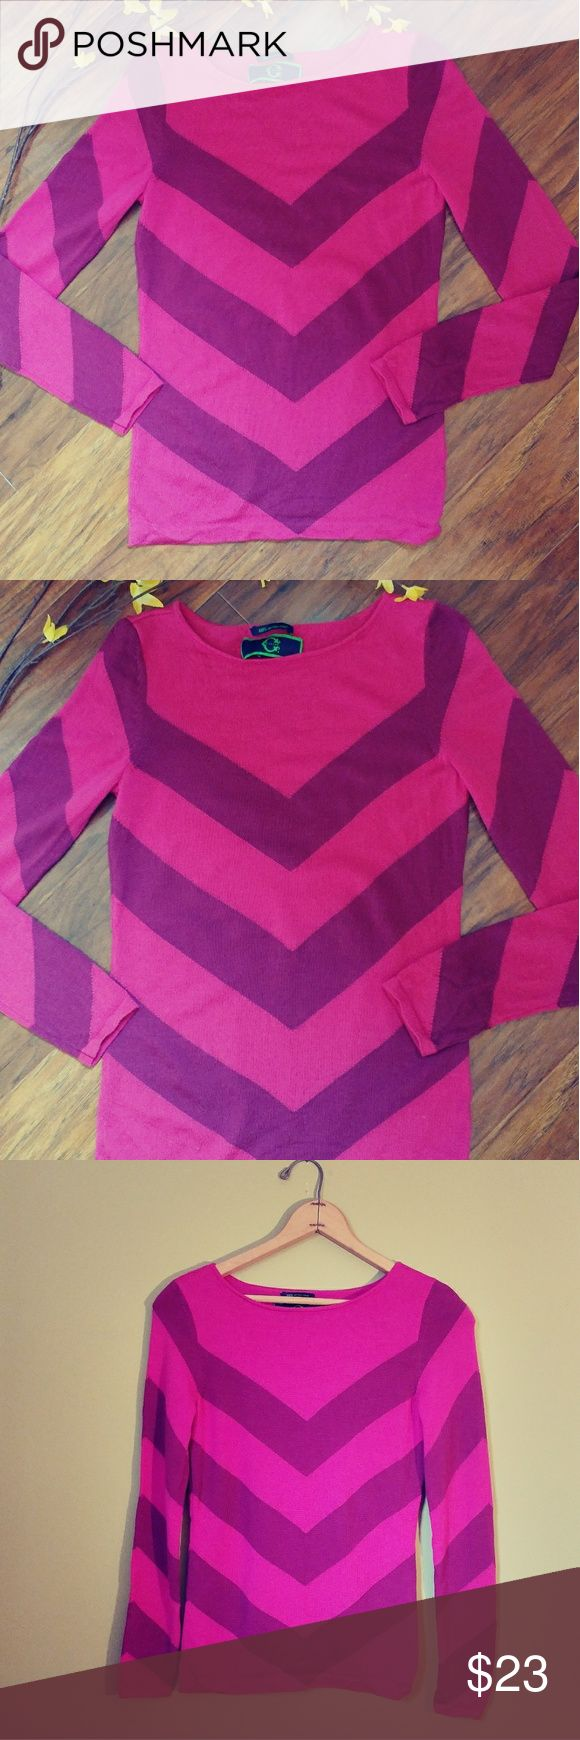 C WONDER WOOL SWEATER EXCELLENT preloved condition, super soft and cozy,  wool . This measures 16 p-p and 24 long. Feel free to ask any questions bundle for better discount C WONDER Sweaters Crew & Scoop Necks